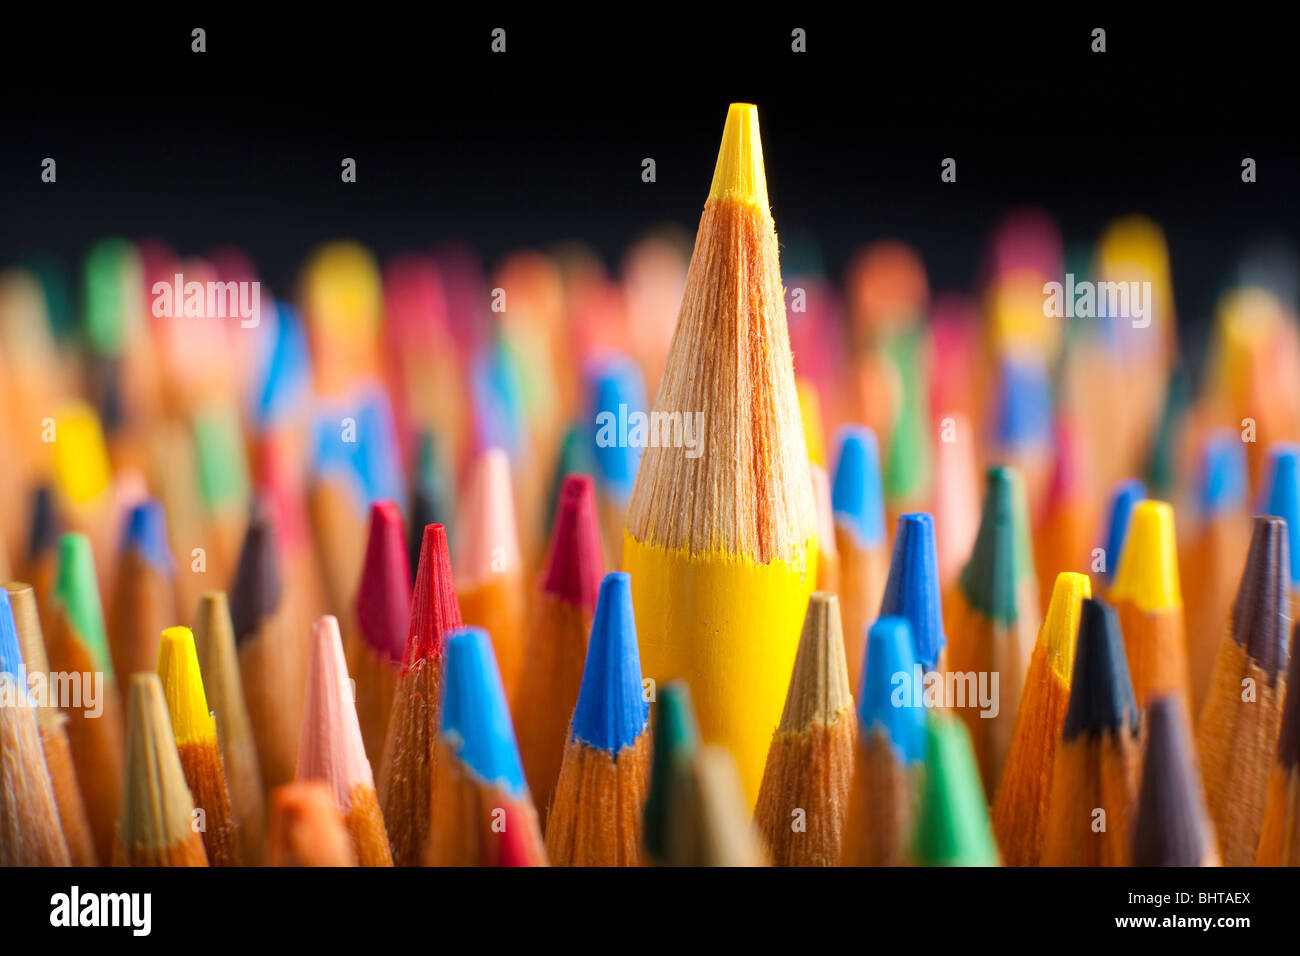 Color pencils representing the concept of Standing out from the crowd - Stock Image